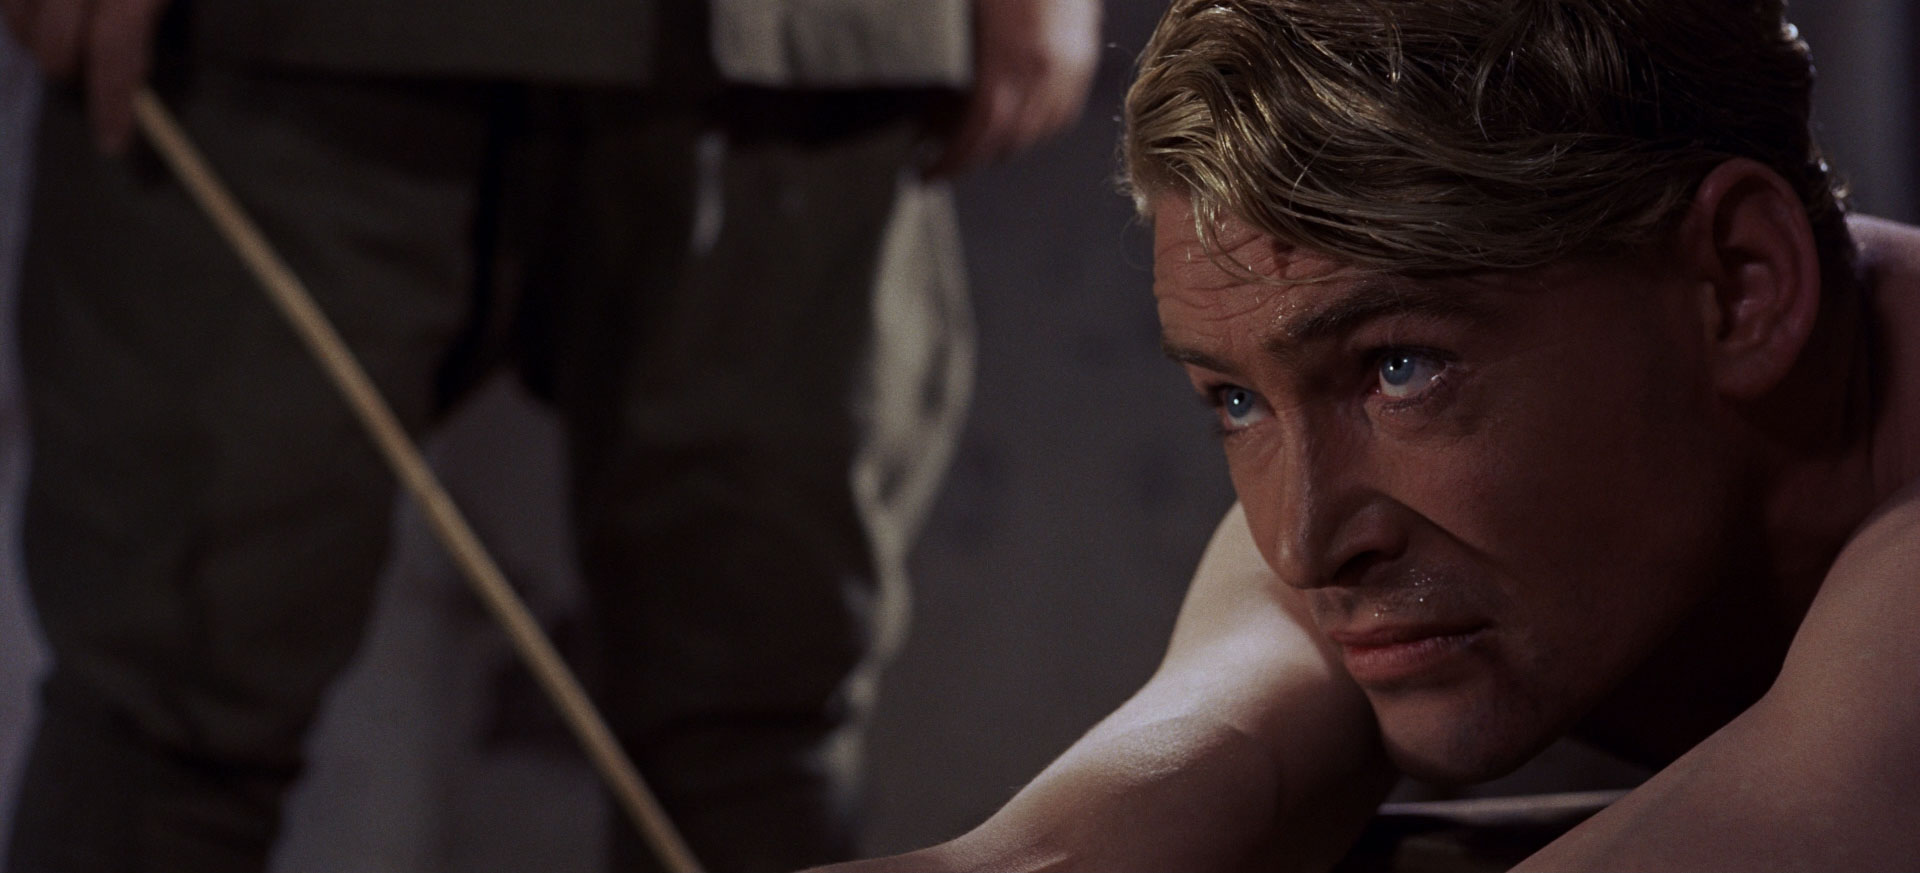 Peter O'Toole dans Lawrence d'Arabie de David Lean (1962).